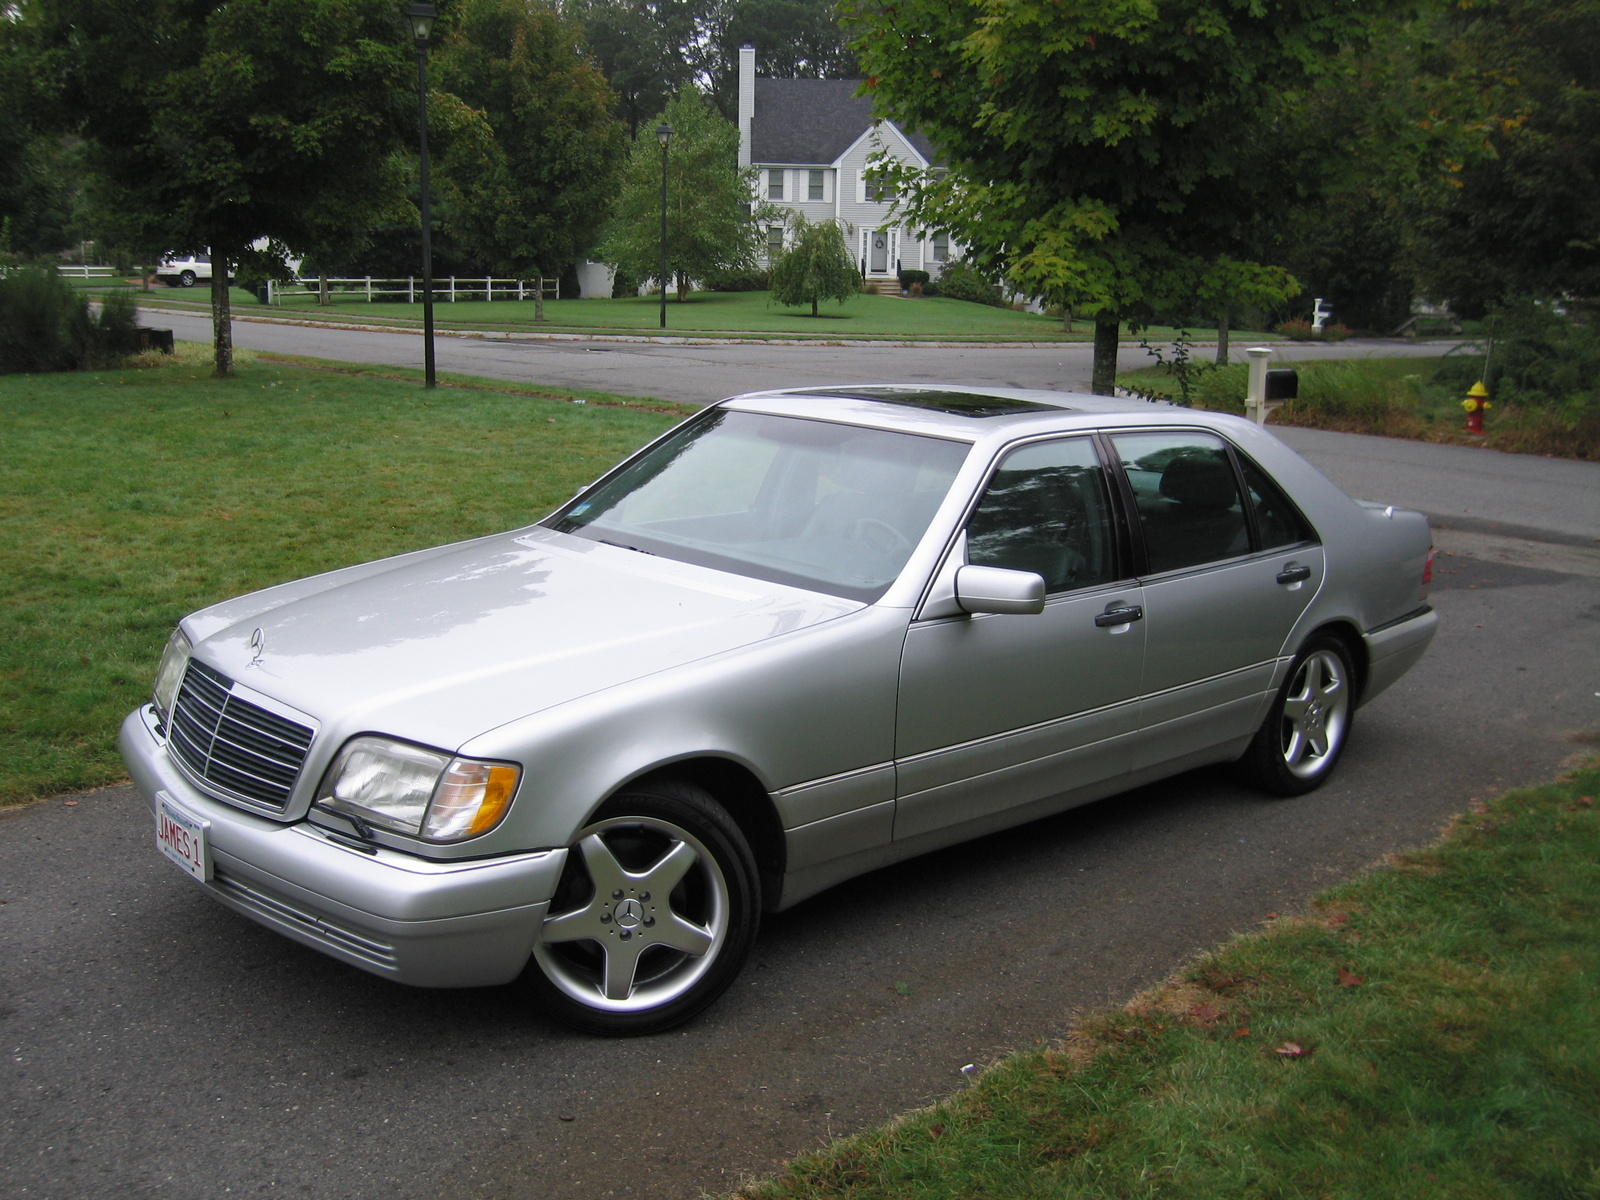 1999 mercedes benz s class exterior pictures cargurus for Mercedes benz s420